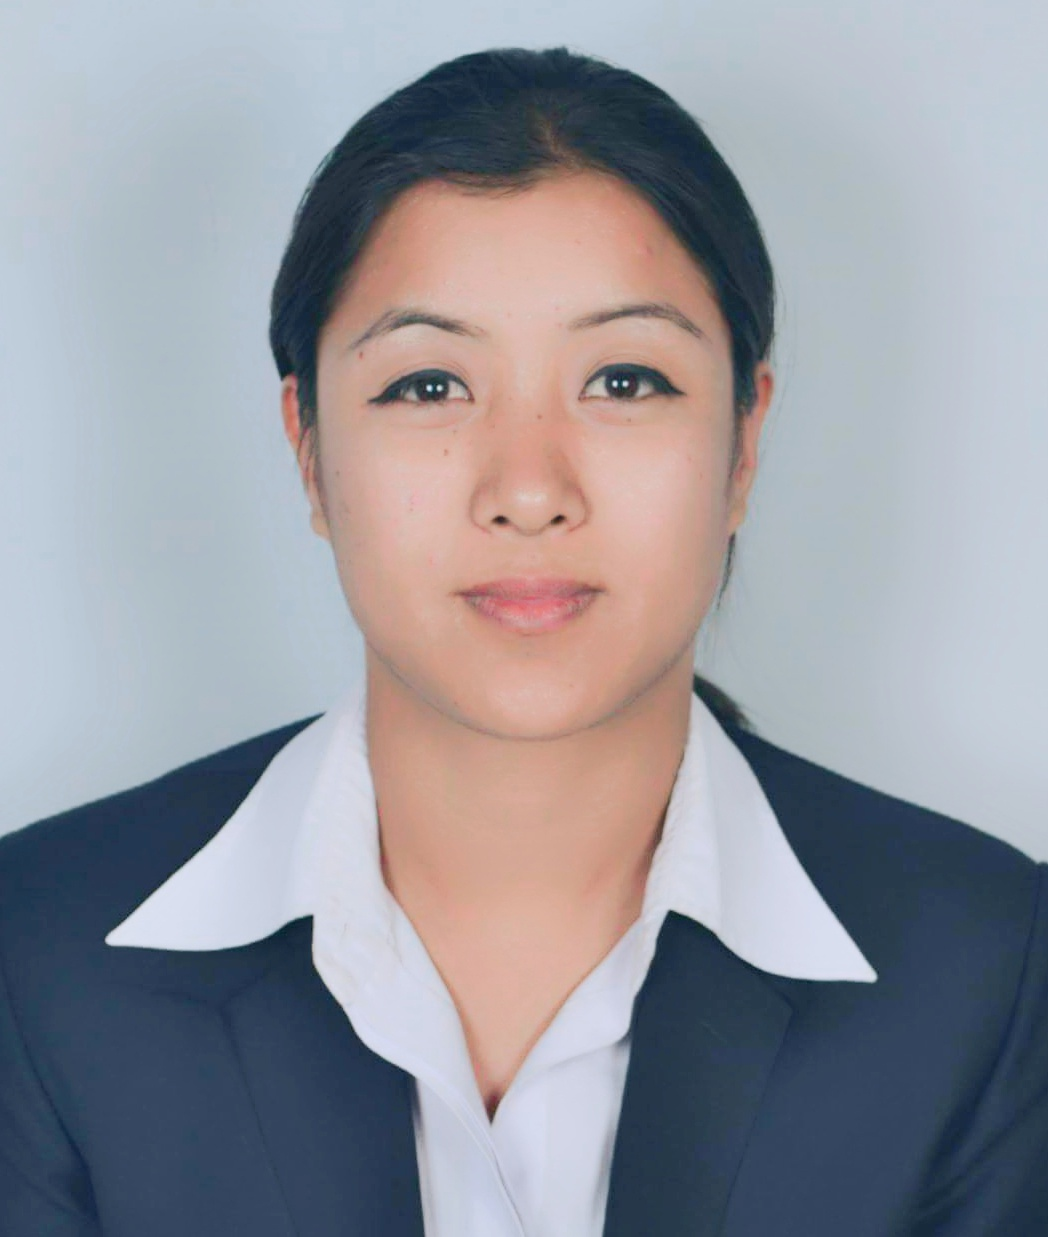 Pragya Shrestha